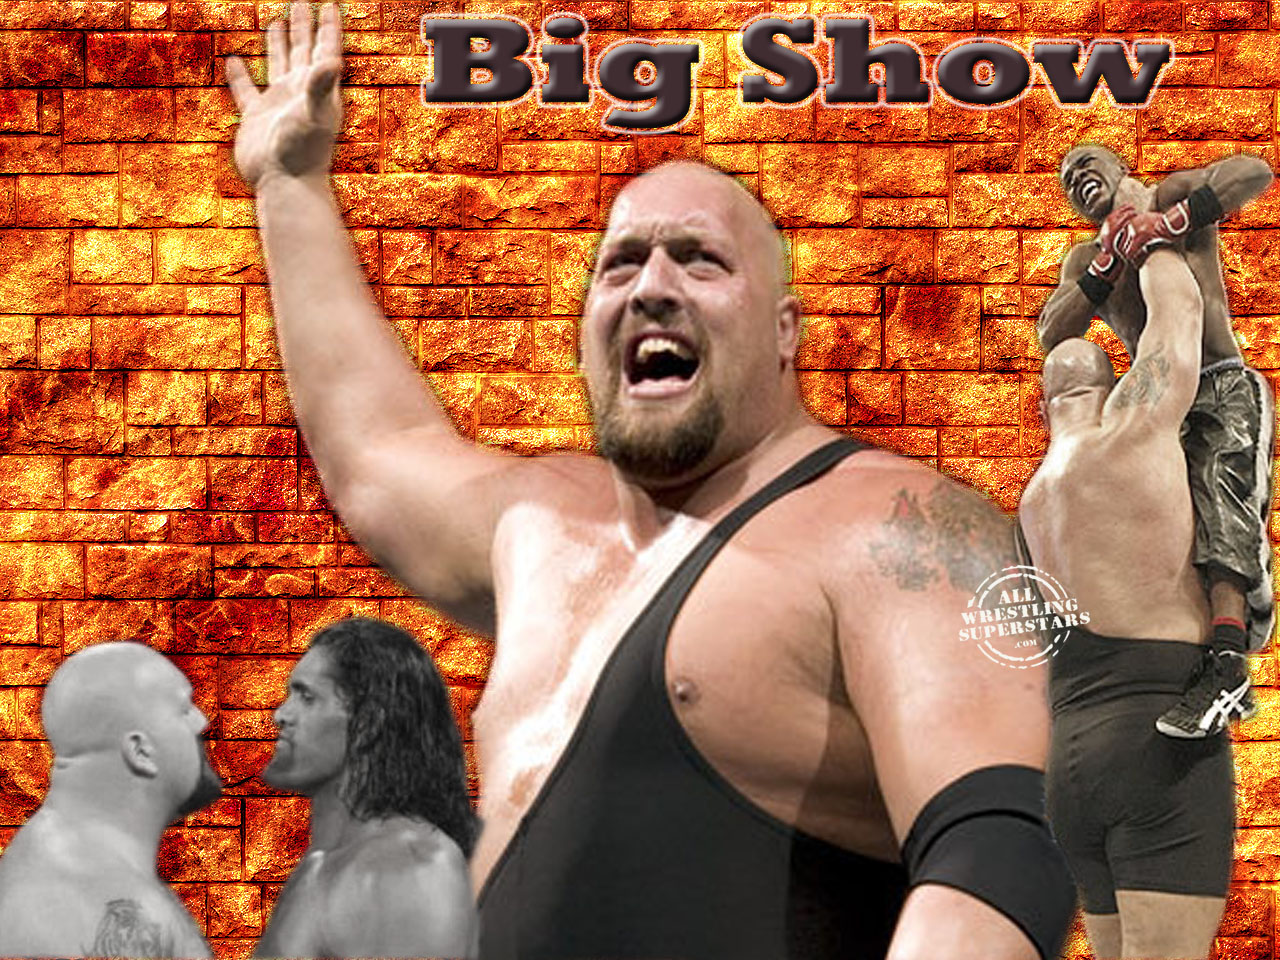 wwe wrestling BIG SHOW